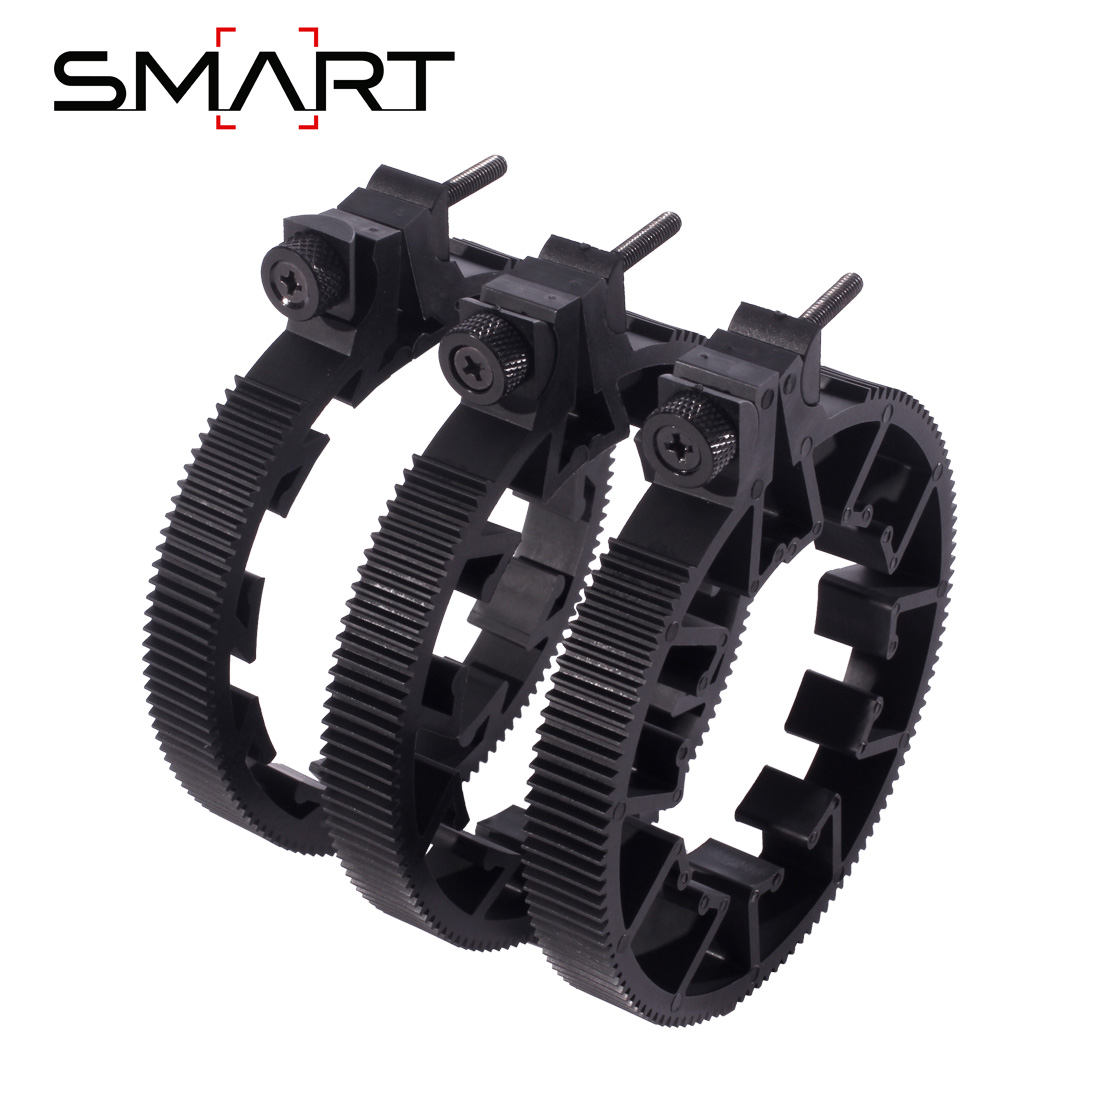 SMART Lens Gear Ring Mount